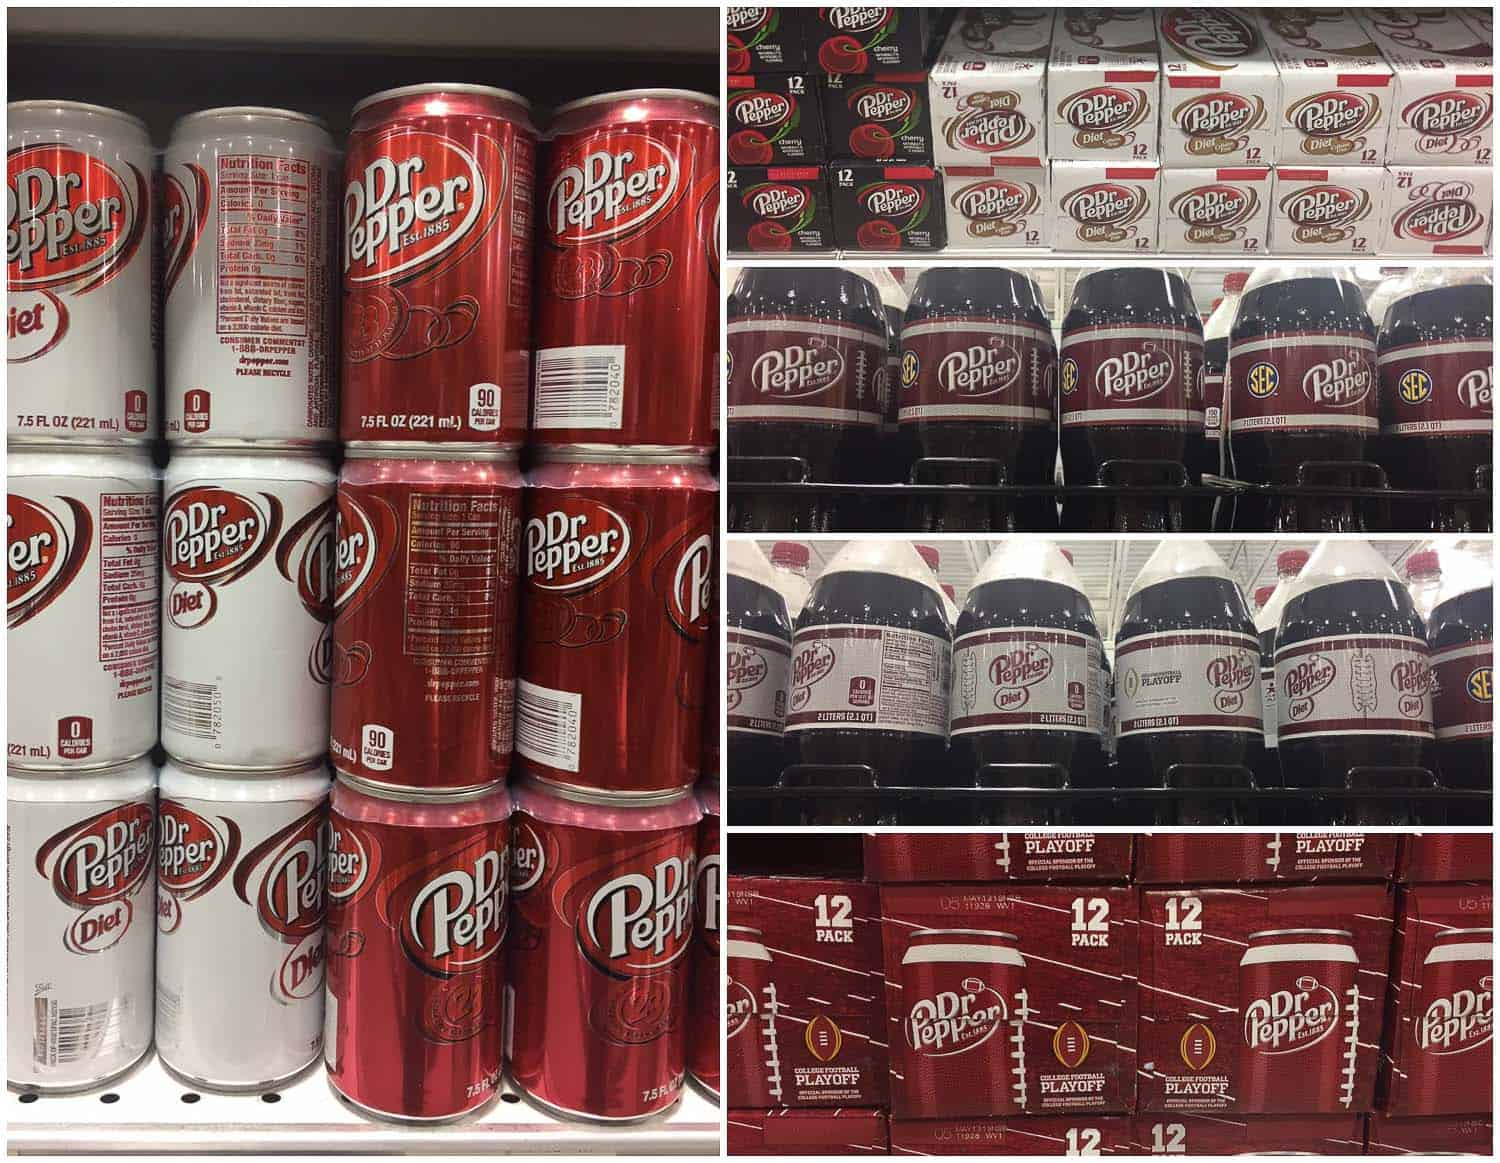 A variety of Dr Pepper products on supermarket shelves.